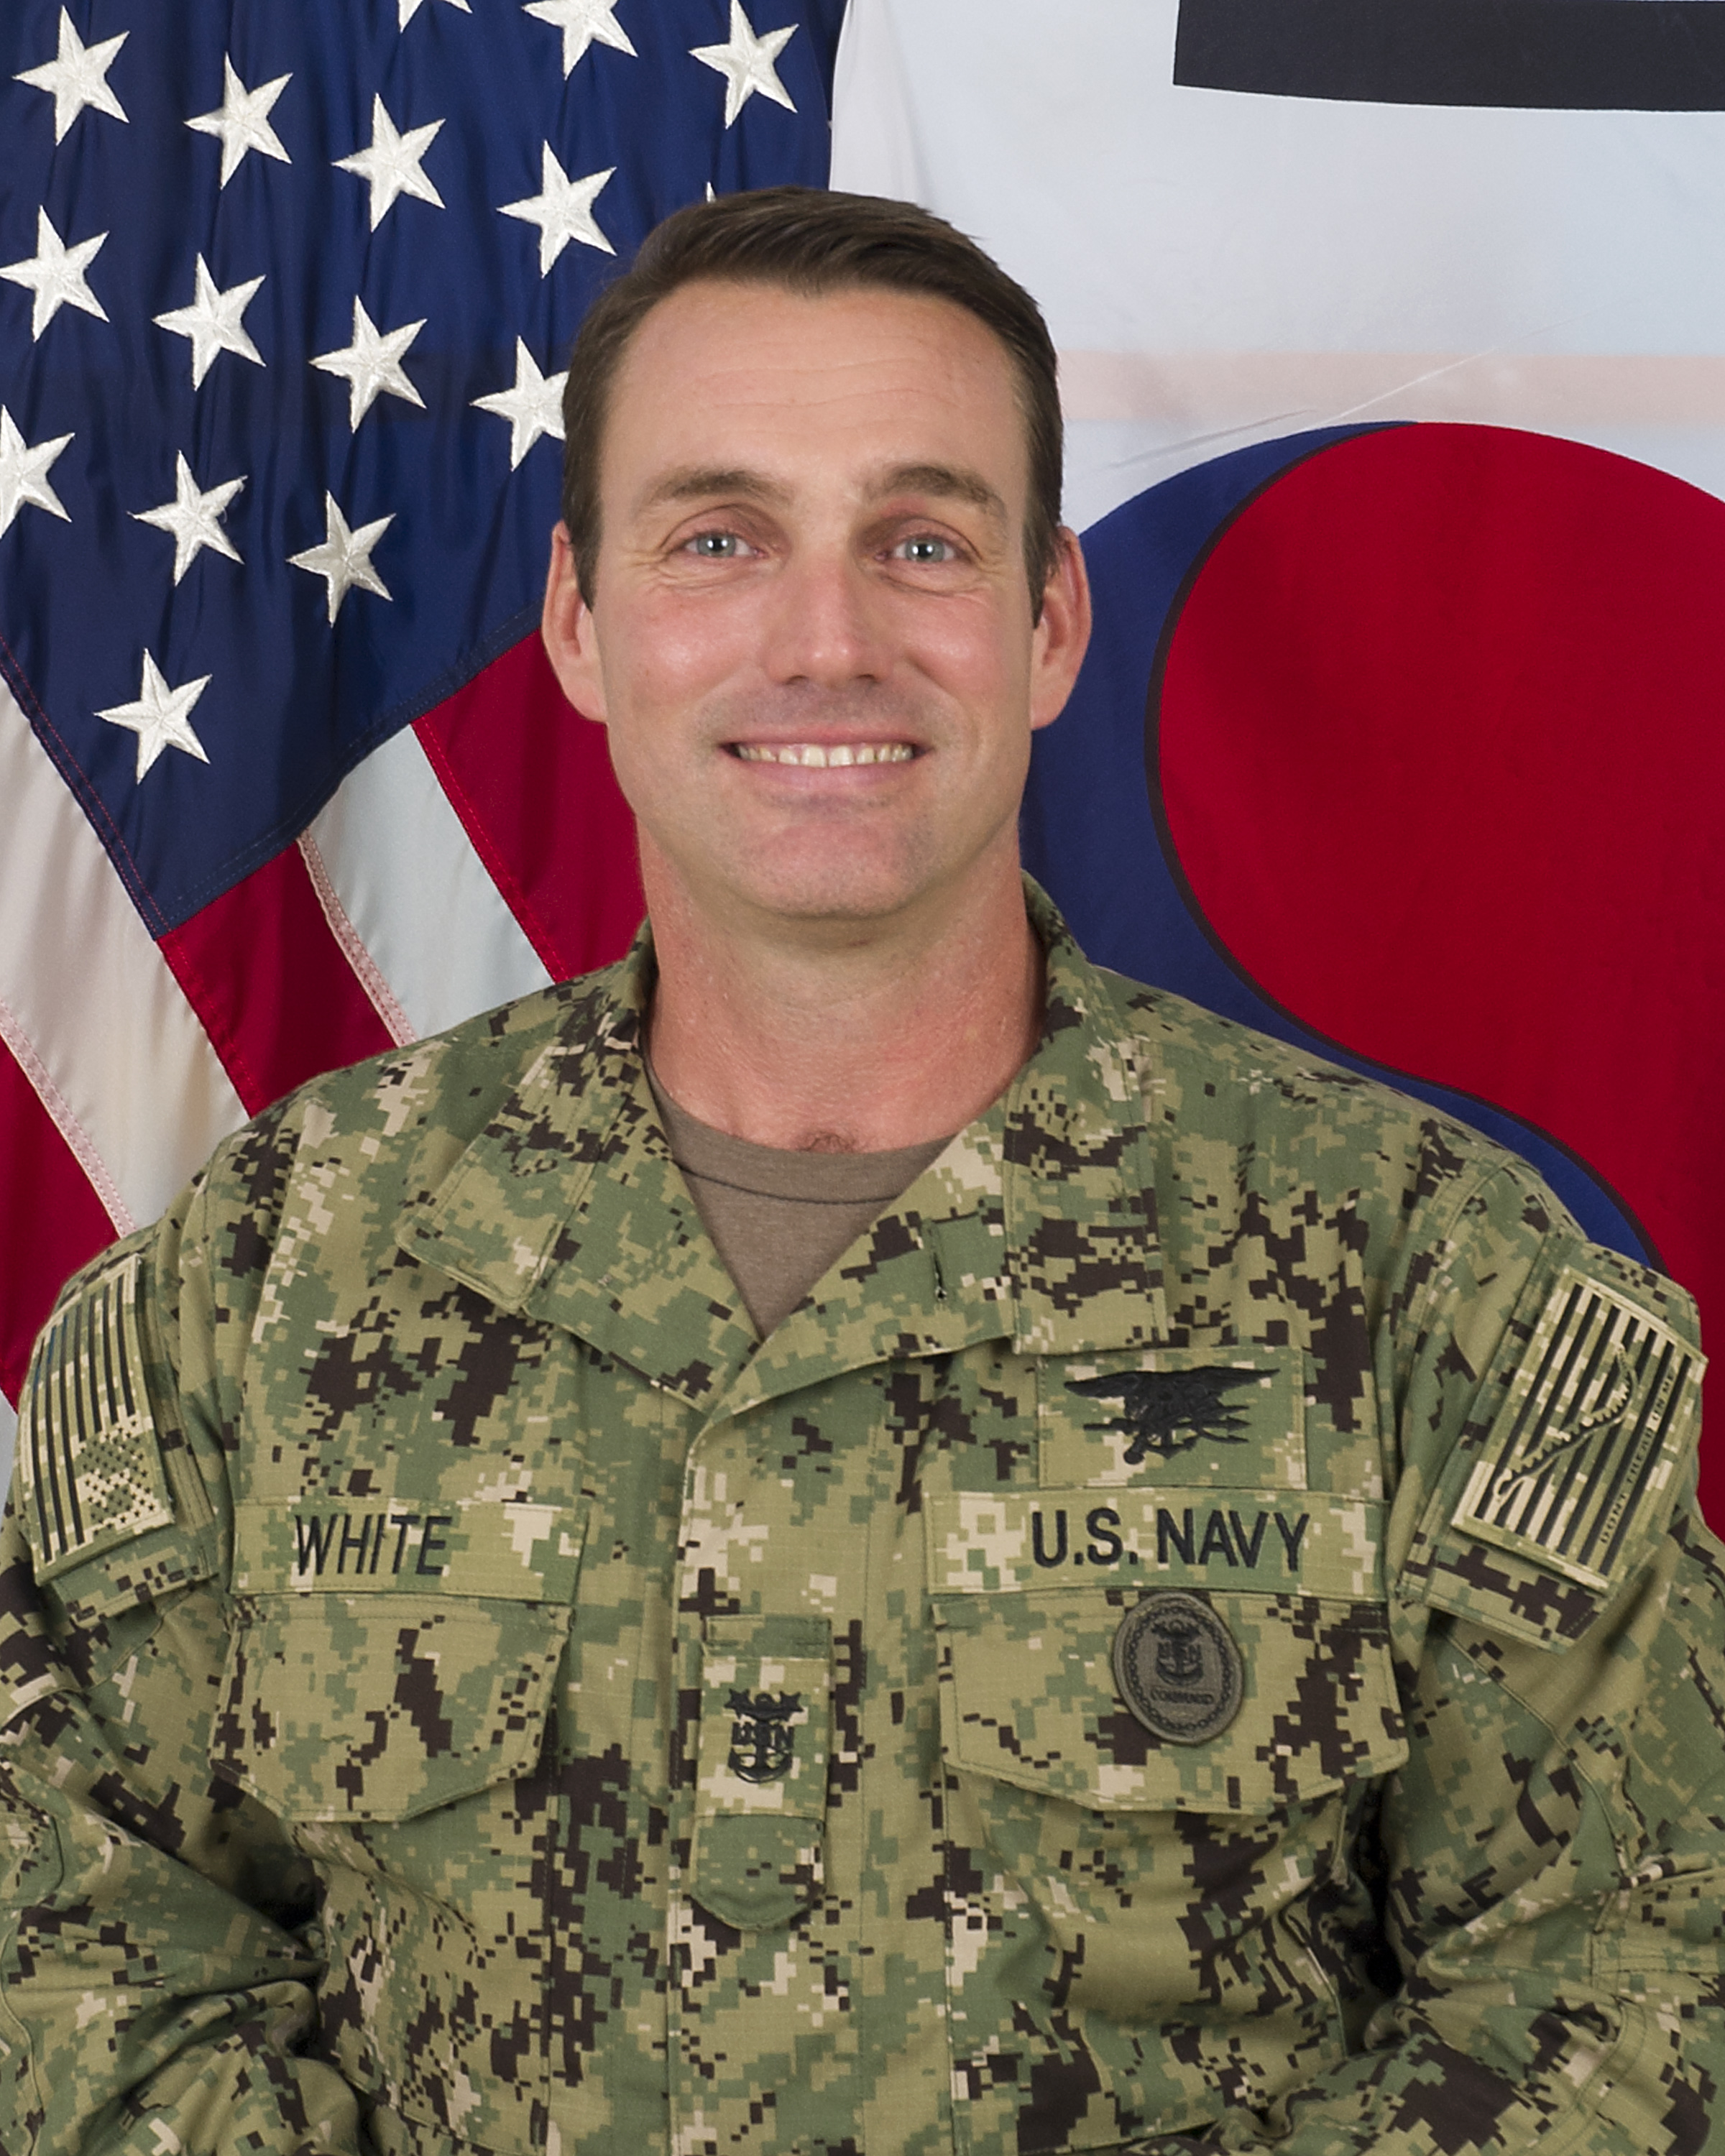 Senior Enlisted Leader, SOCKOR, Command Master Chief Petty Officer Stephen D. White